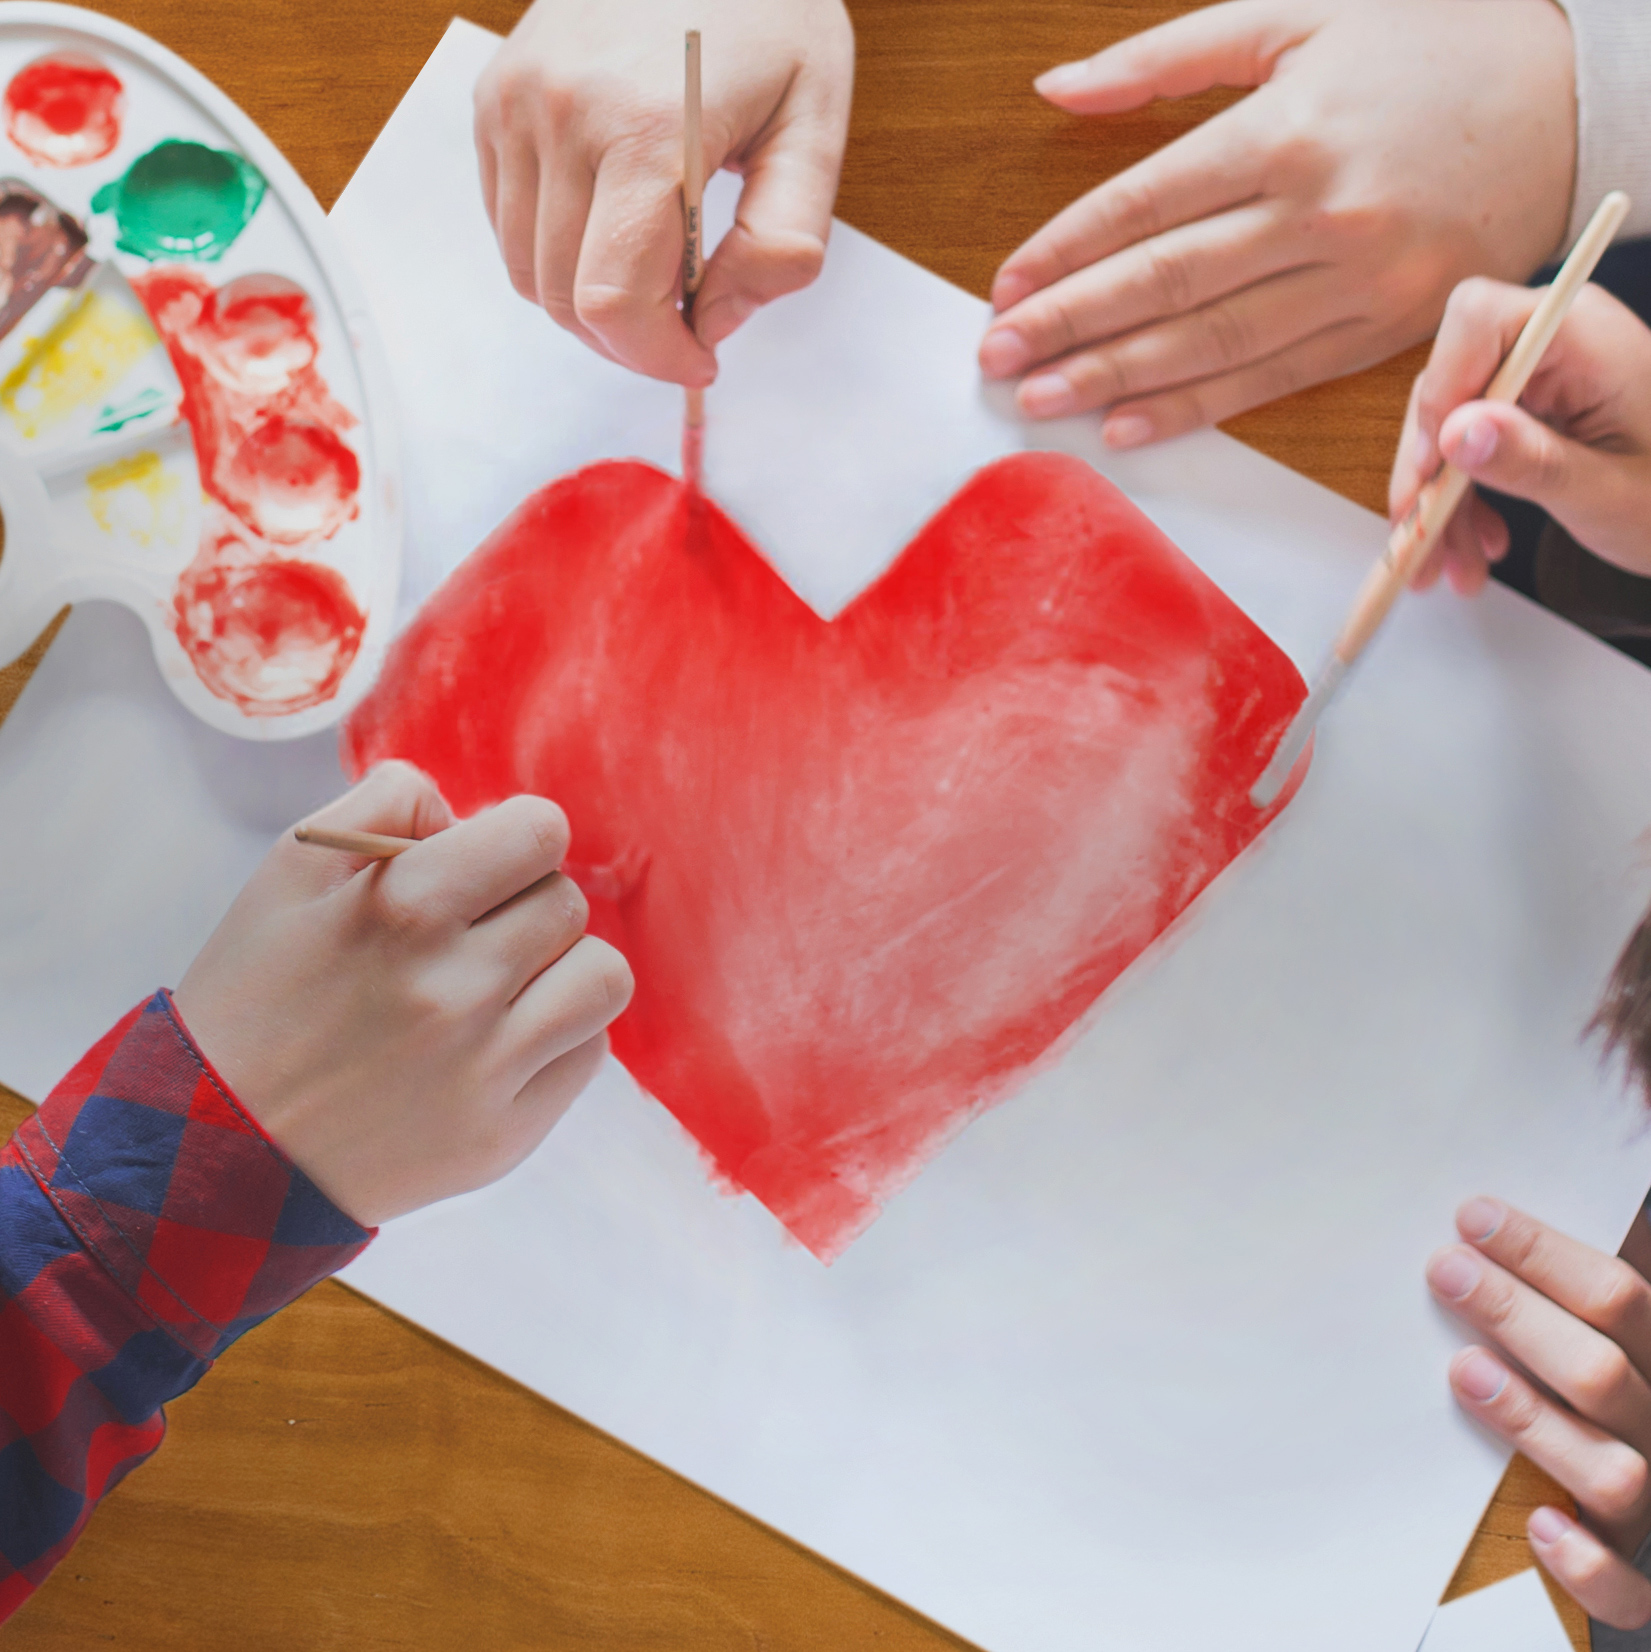 Children painting a red CVS Health heart® on a white canvas using watercolors.